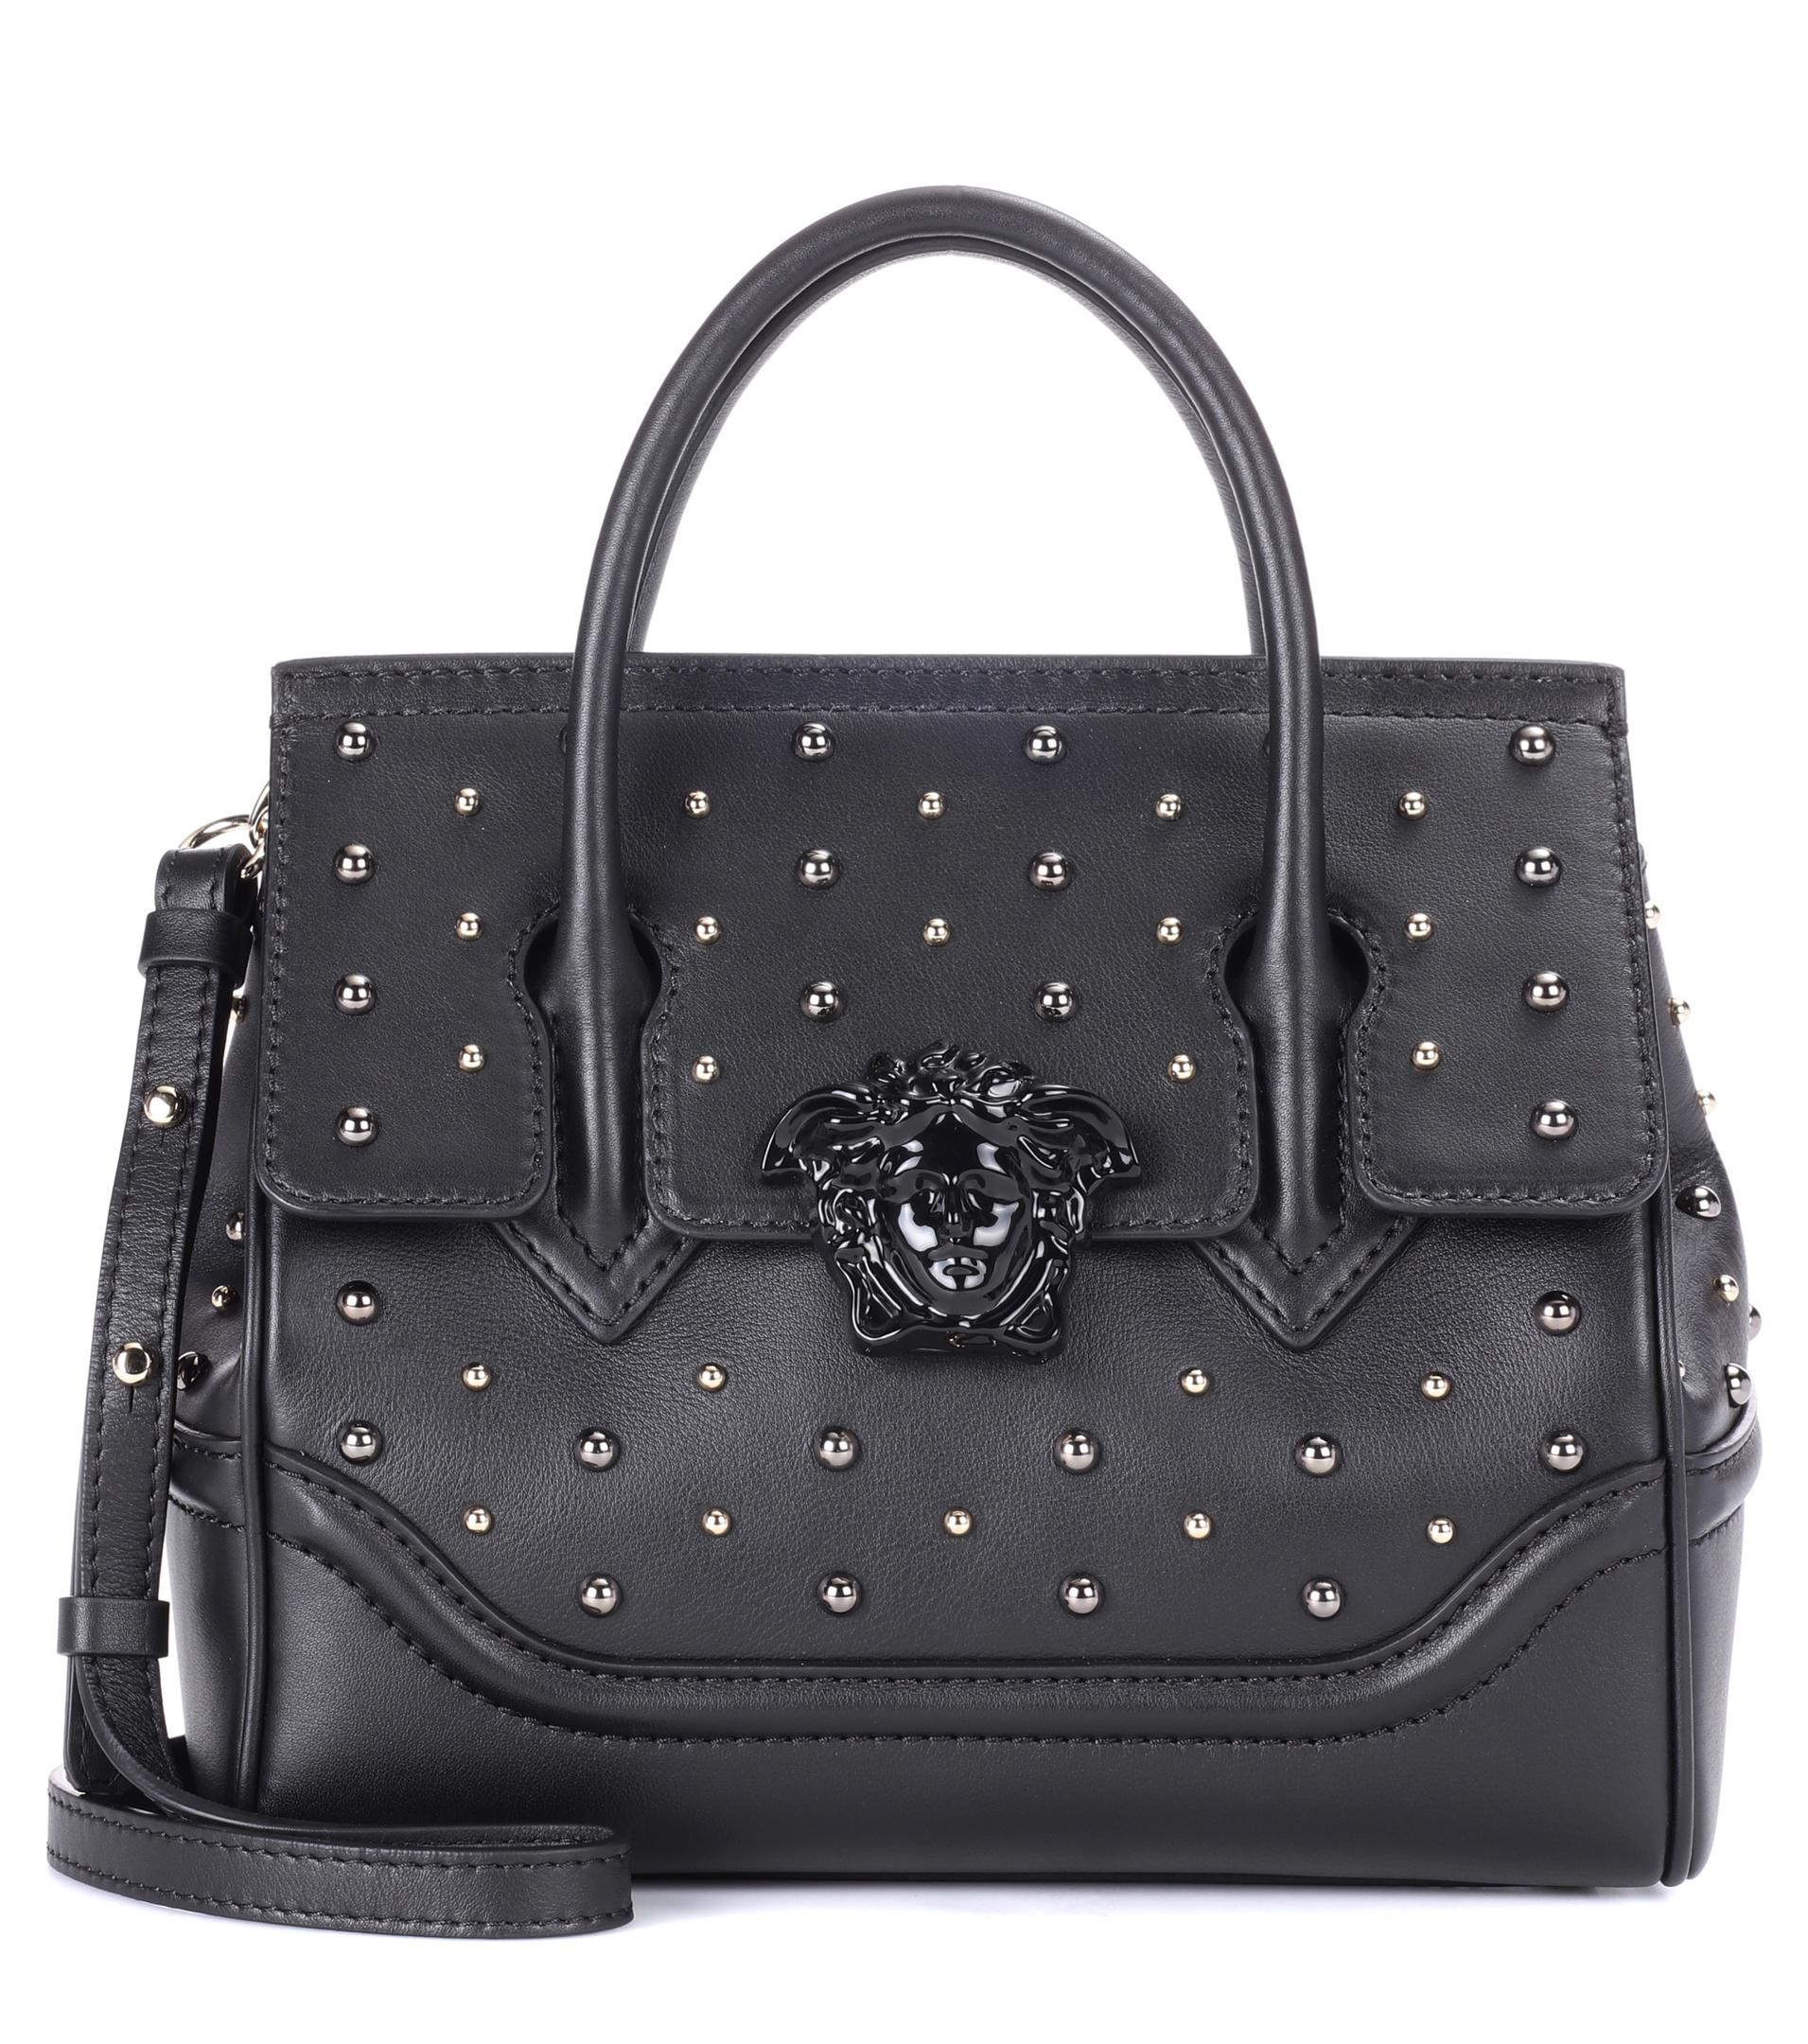 75c7a03270 Versace Palazzo Empire Small Bag In Black Calf And Studs in Black - Lyst